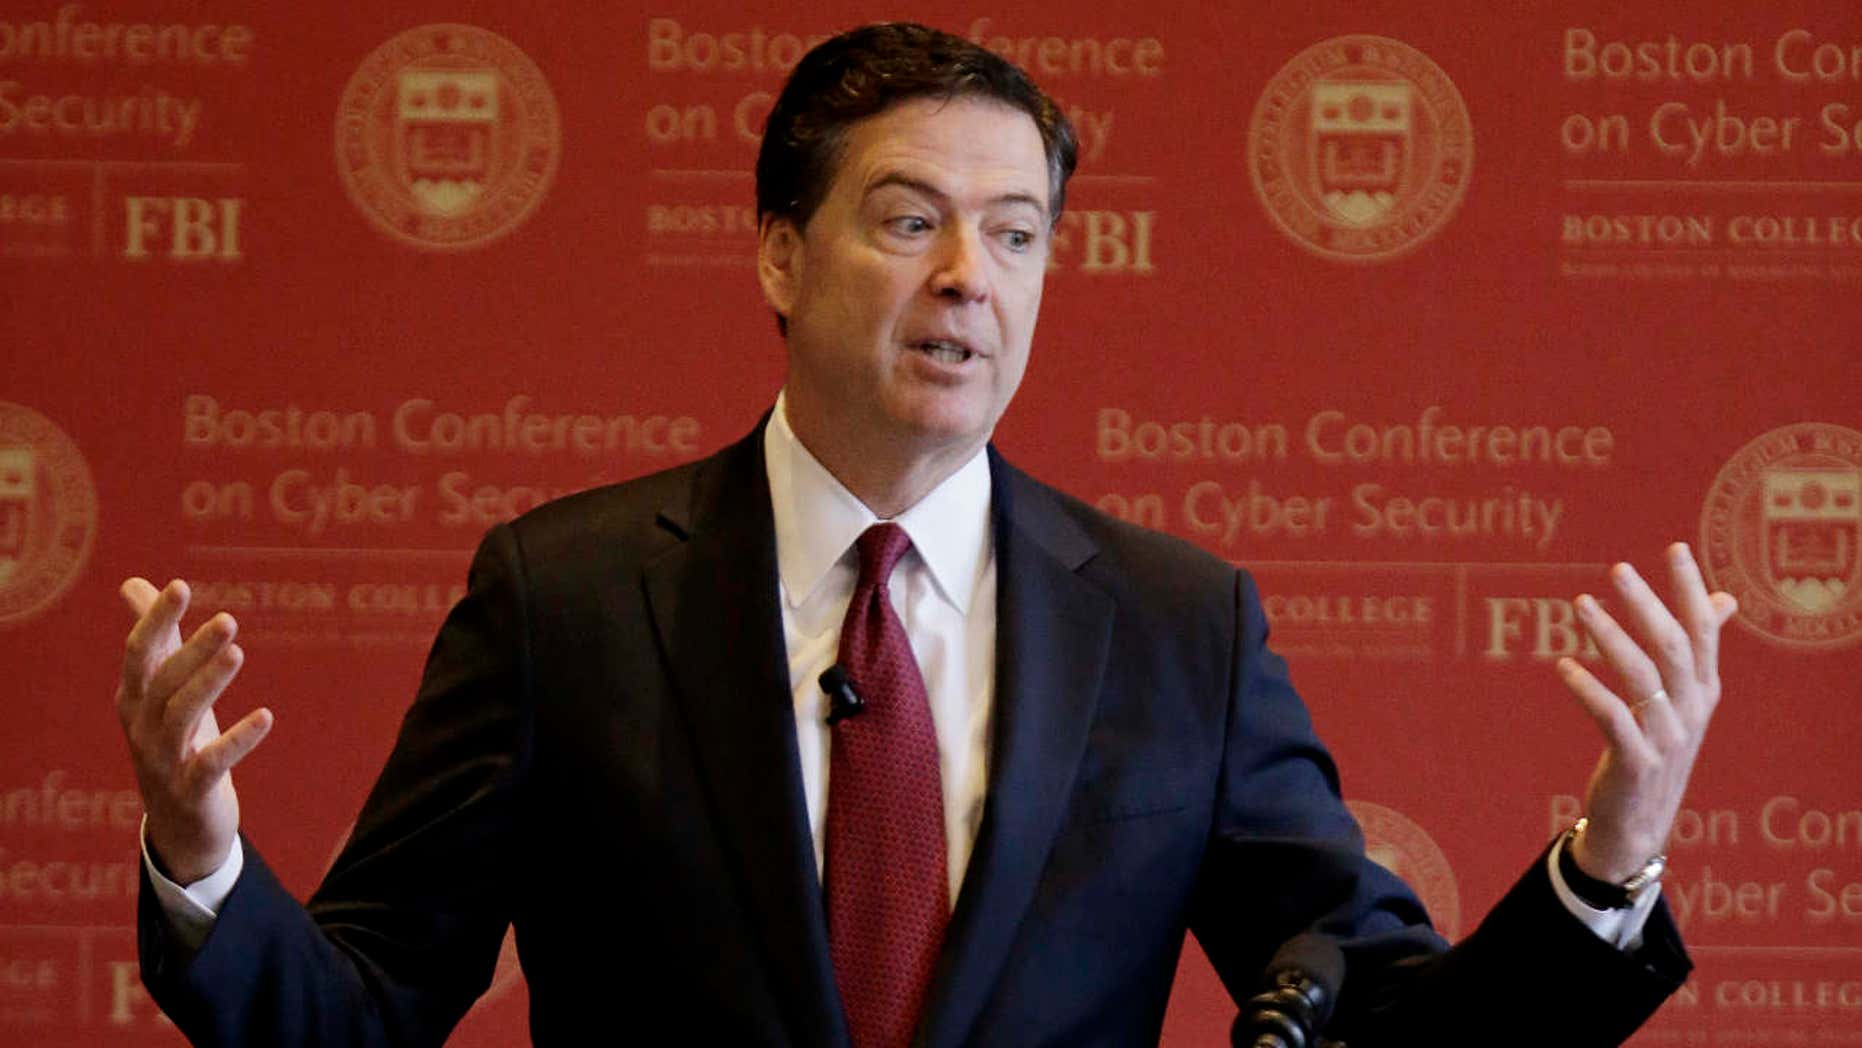 FBI Director James Comey gestures as he speaks on cyber security at the first Boston Conference of Cyber Security at Boston College, Wednesday, March 8, 2017, in Boston.